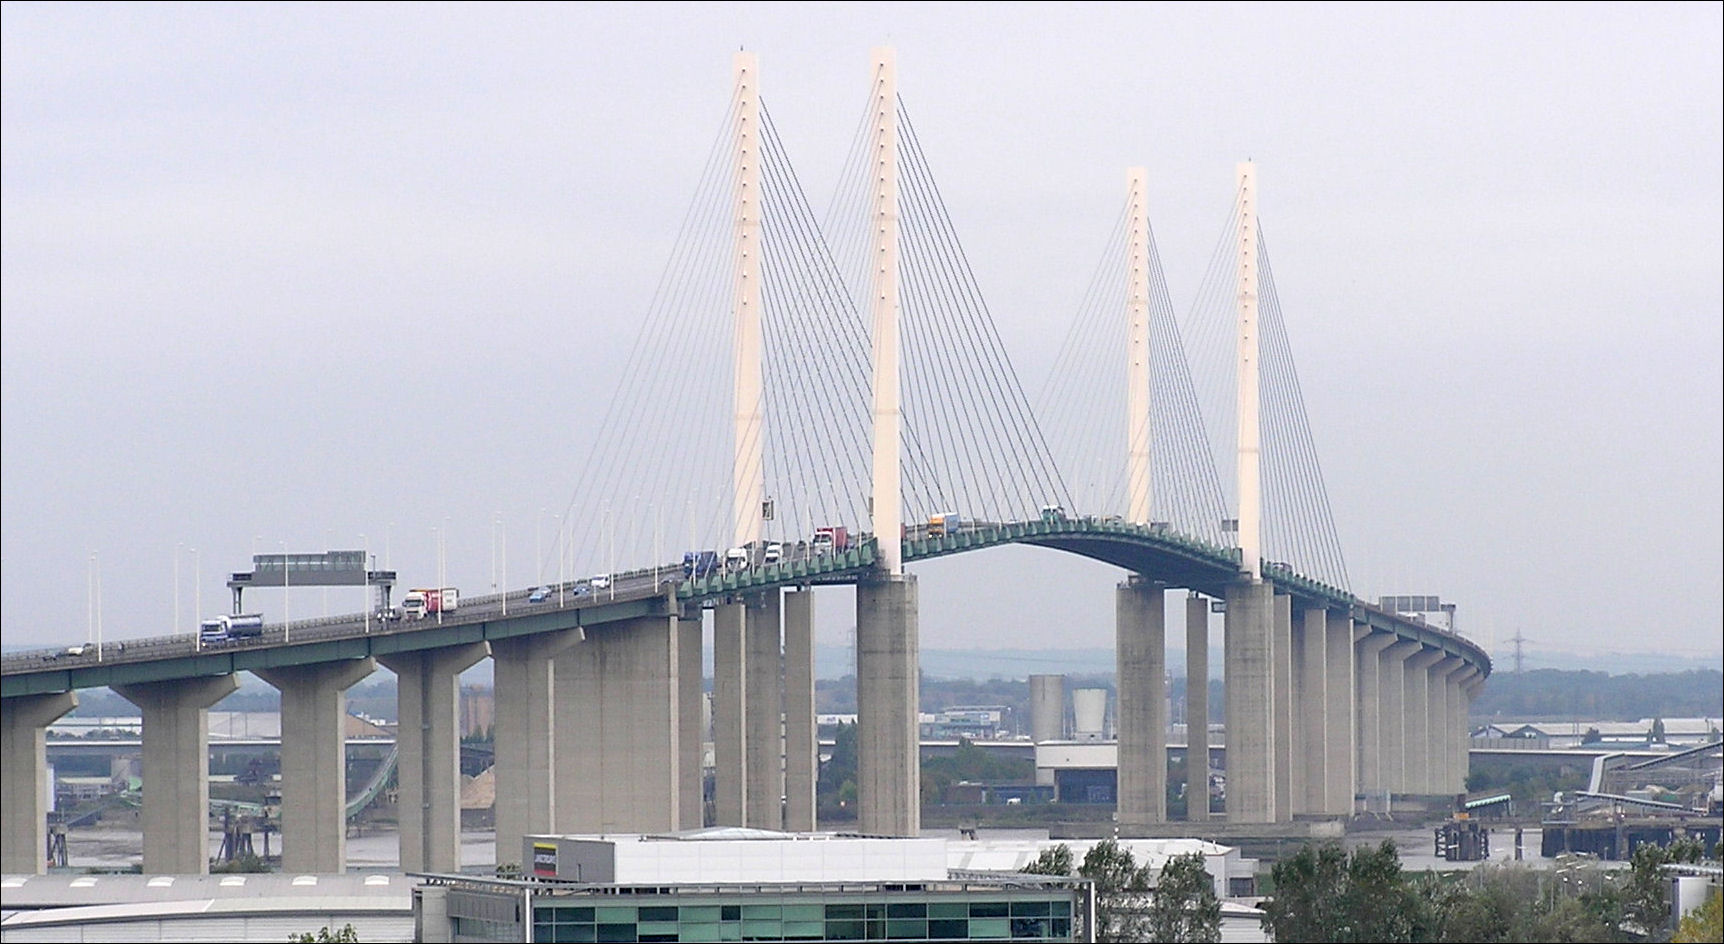 Speed restrictions on QEII Bridge as region braces itself for stormy afternoon